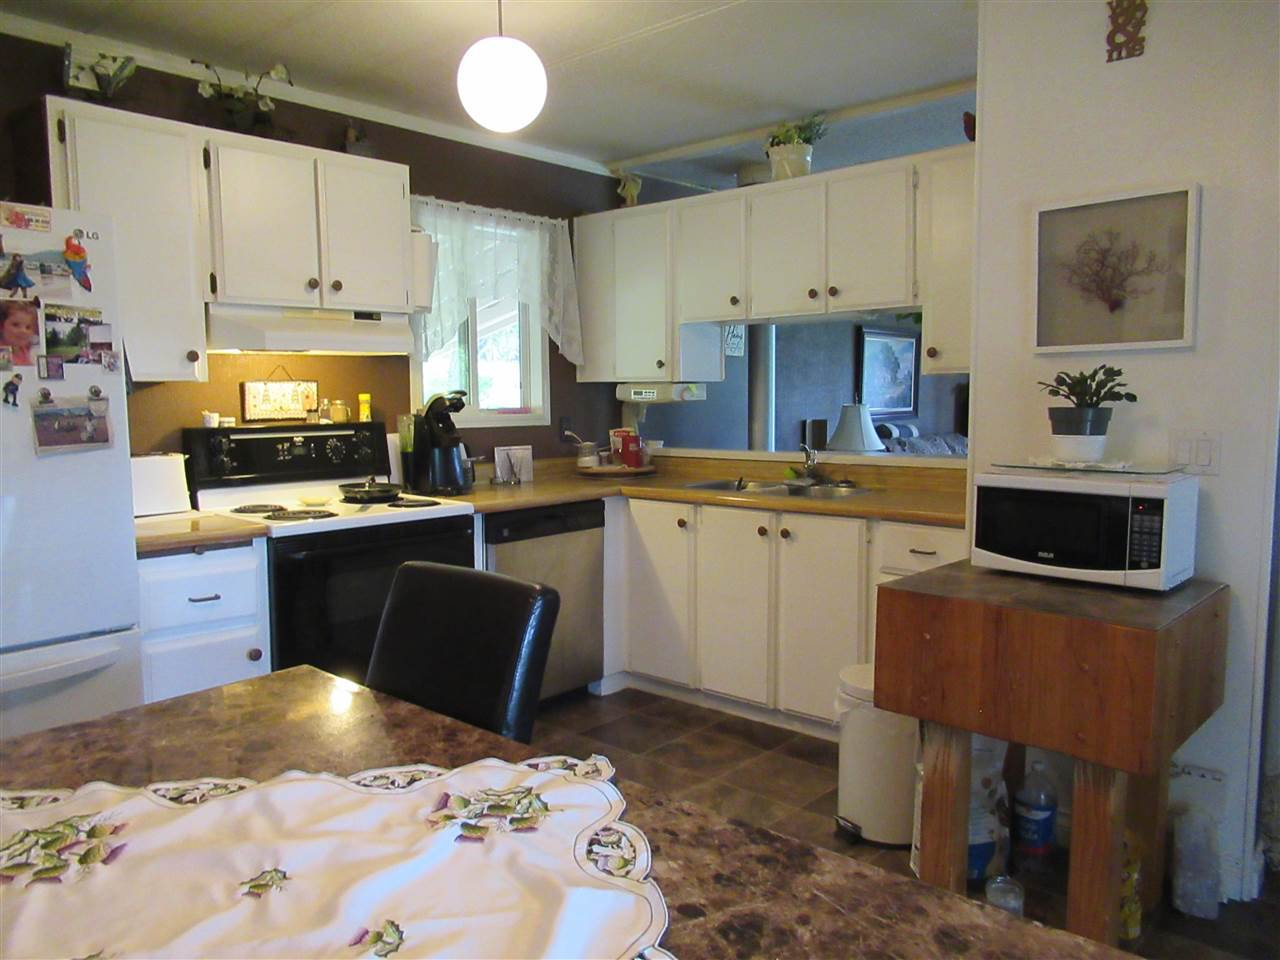 Photo 3: Photos: 1224 DESAUTEL Road in Williams Lake: Williams Lake - Rural East Manufactured Home for sale (Williams Lake (Zone 27))  : MLS®# R2376873